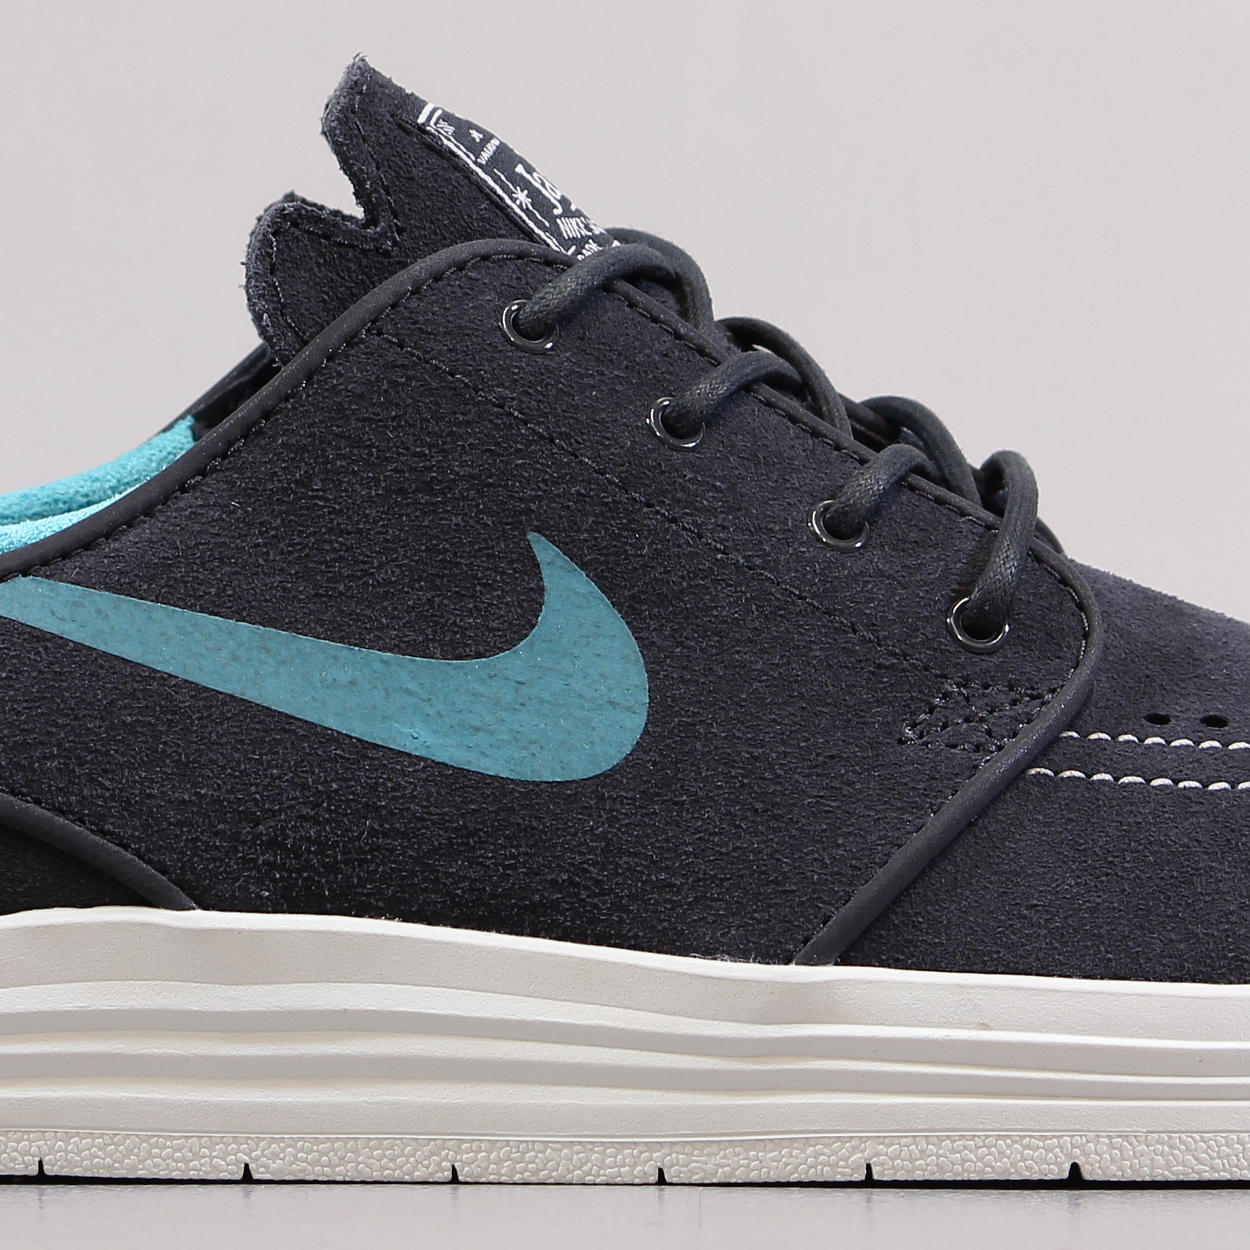 pretty nice fd44b 96862 Keep you feet to your board with these new Nike SB Lunar Stefan Janoski  Shoes in a Anthracite, Summit White and Dusty Cactus.